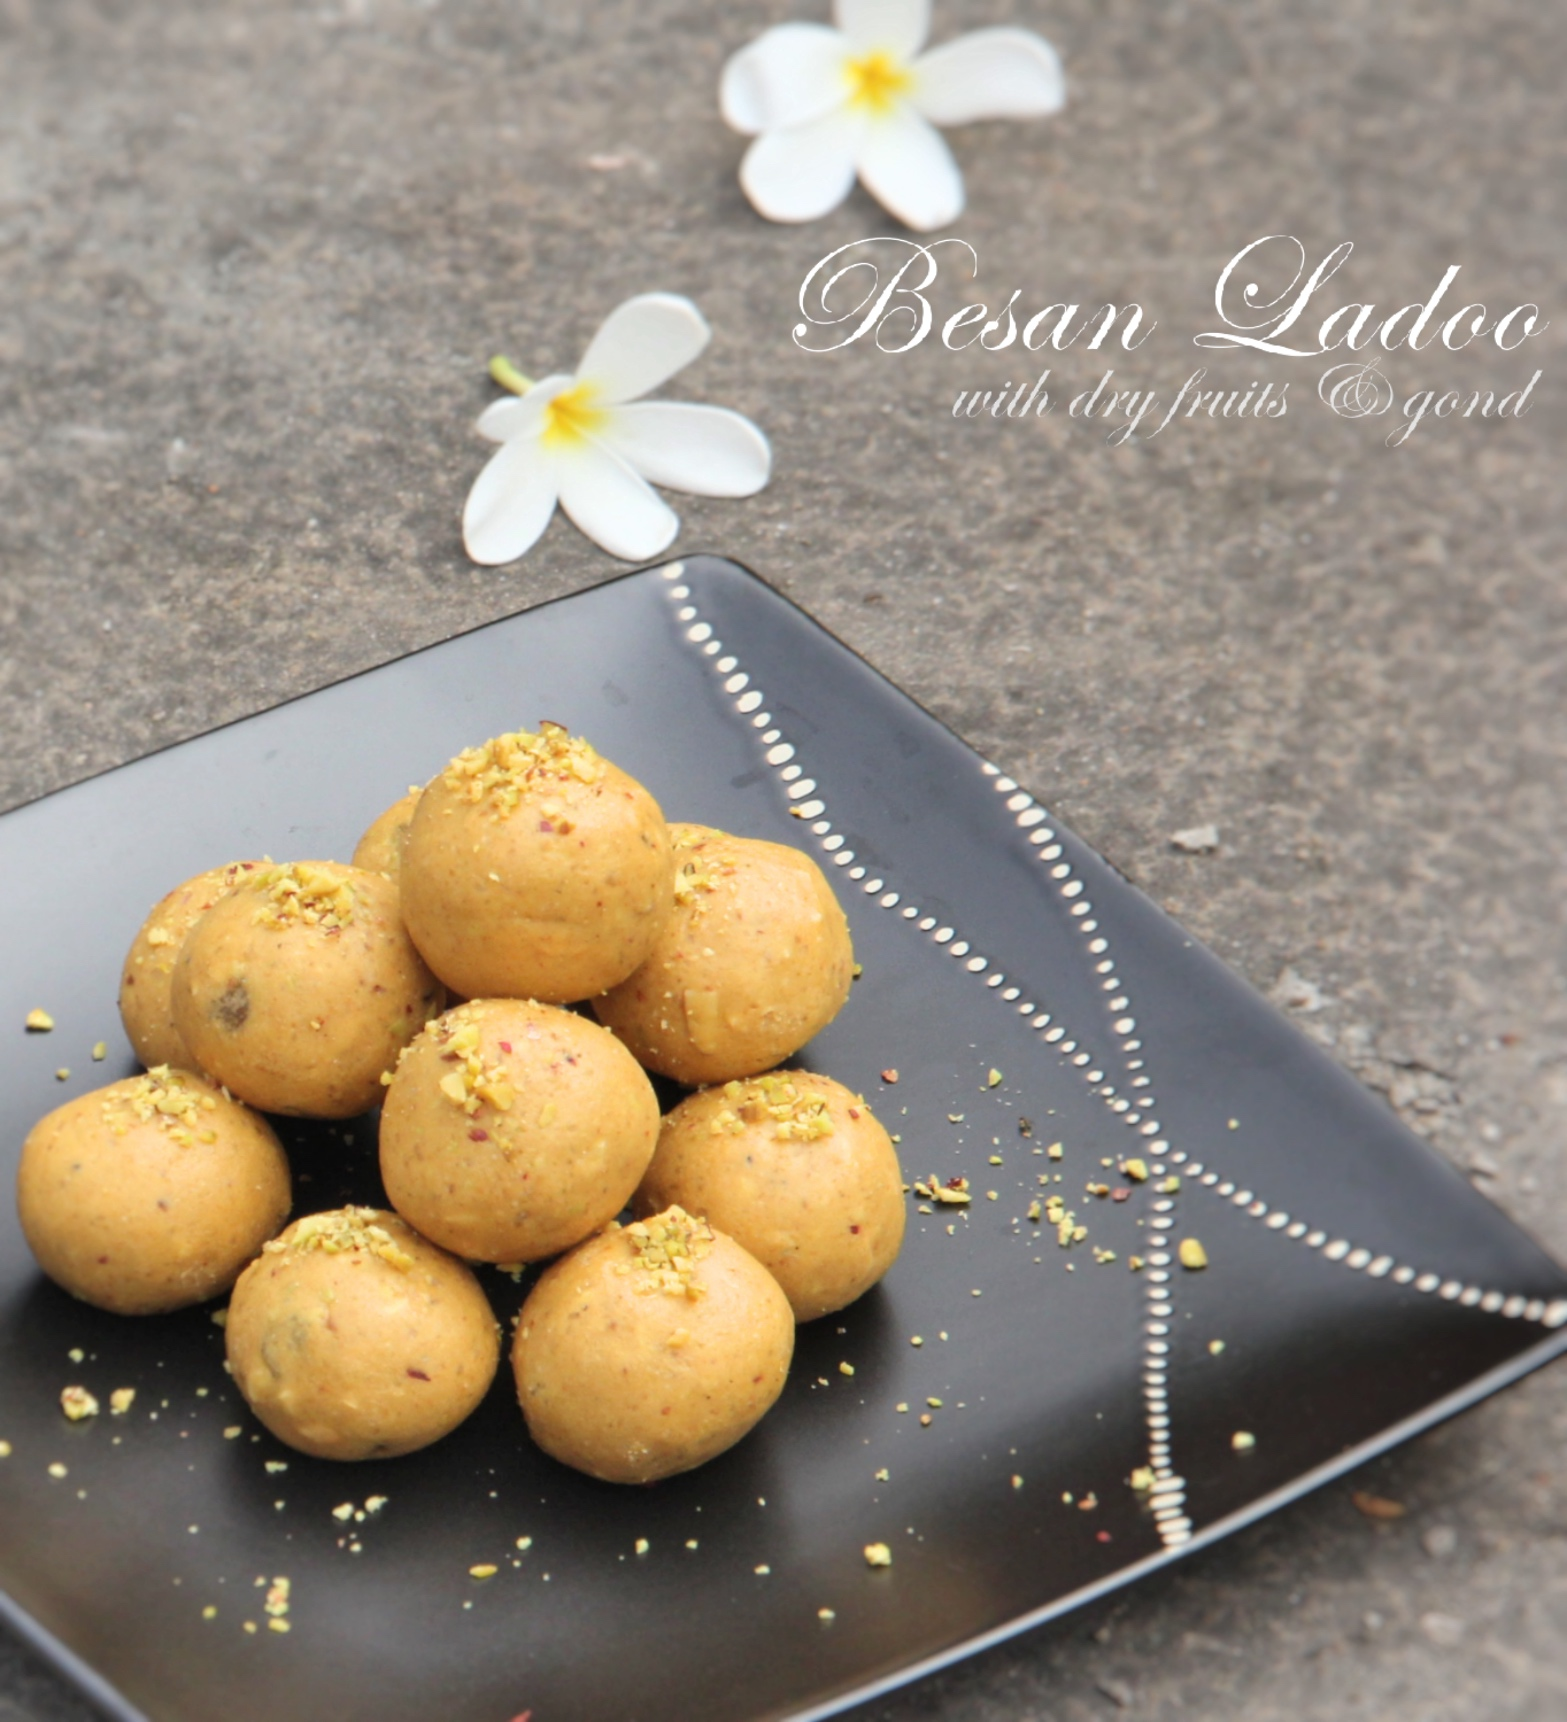 final besan ladoo arrangement